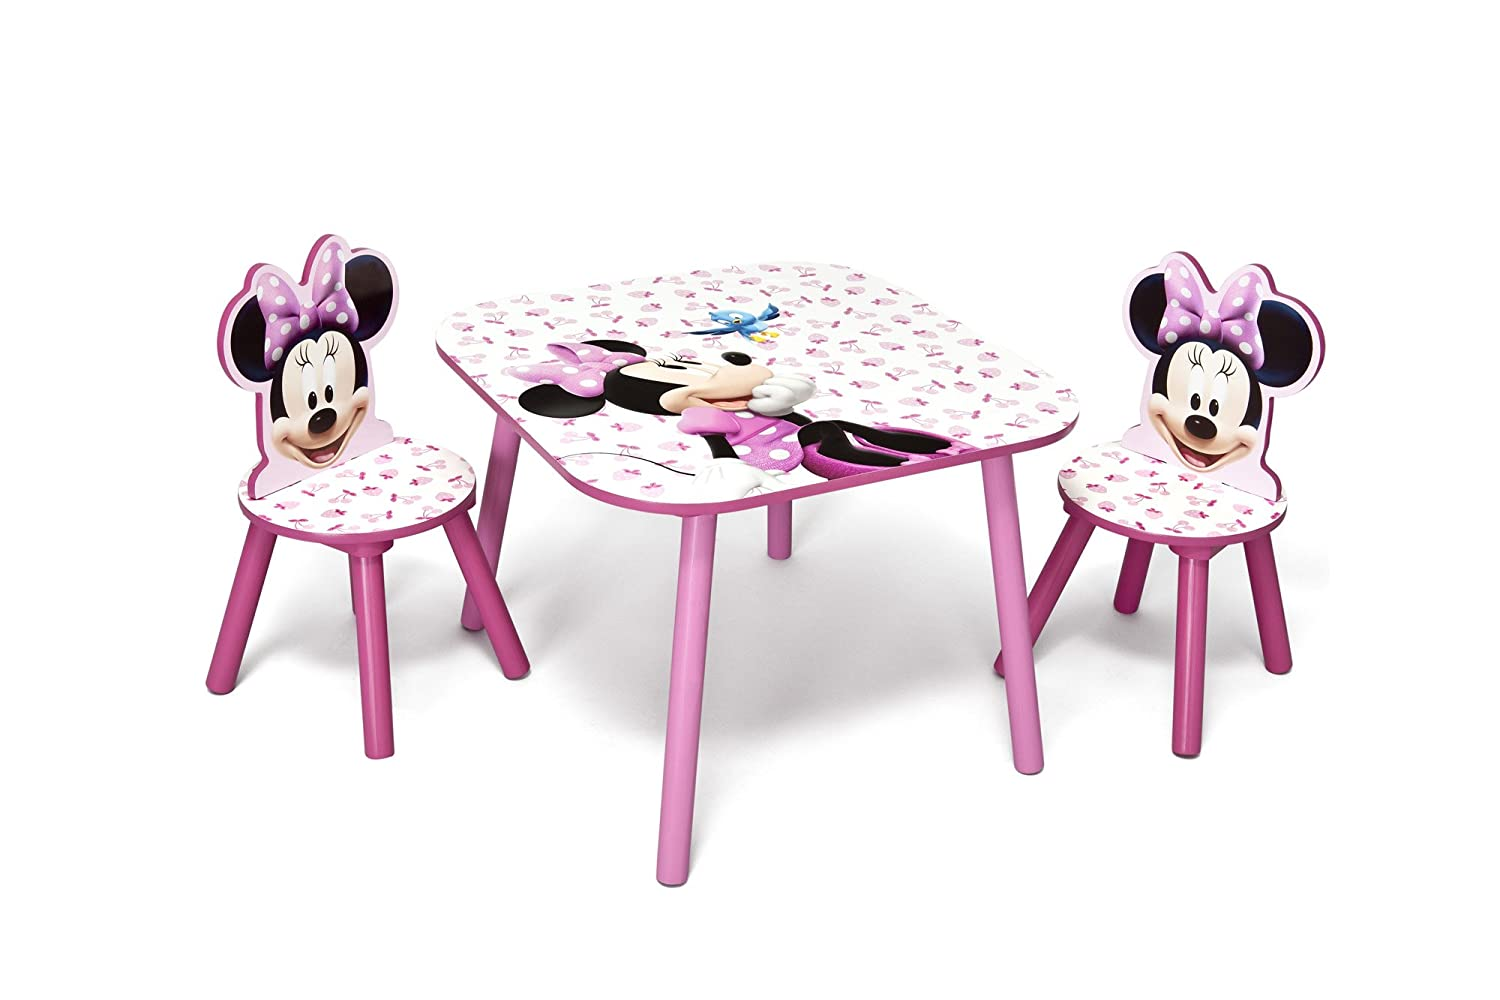 Disney Frozen Children's Table and Chair Set Delta Children TT89498FZ